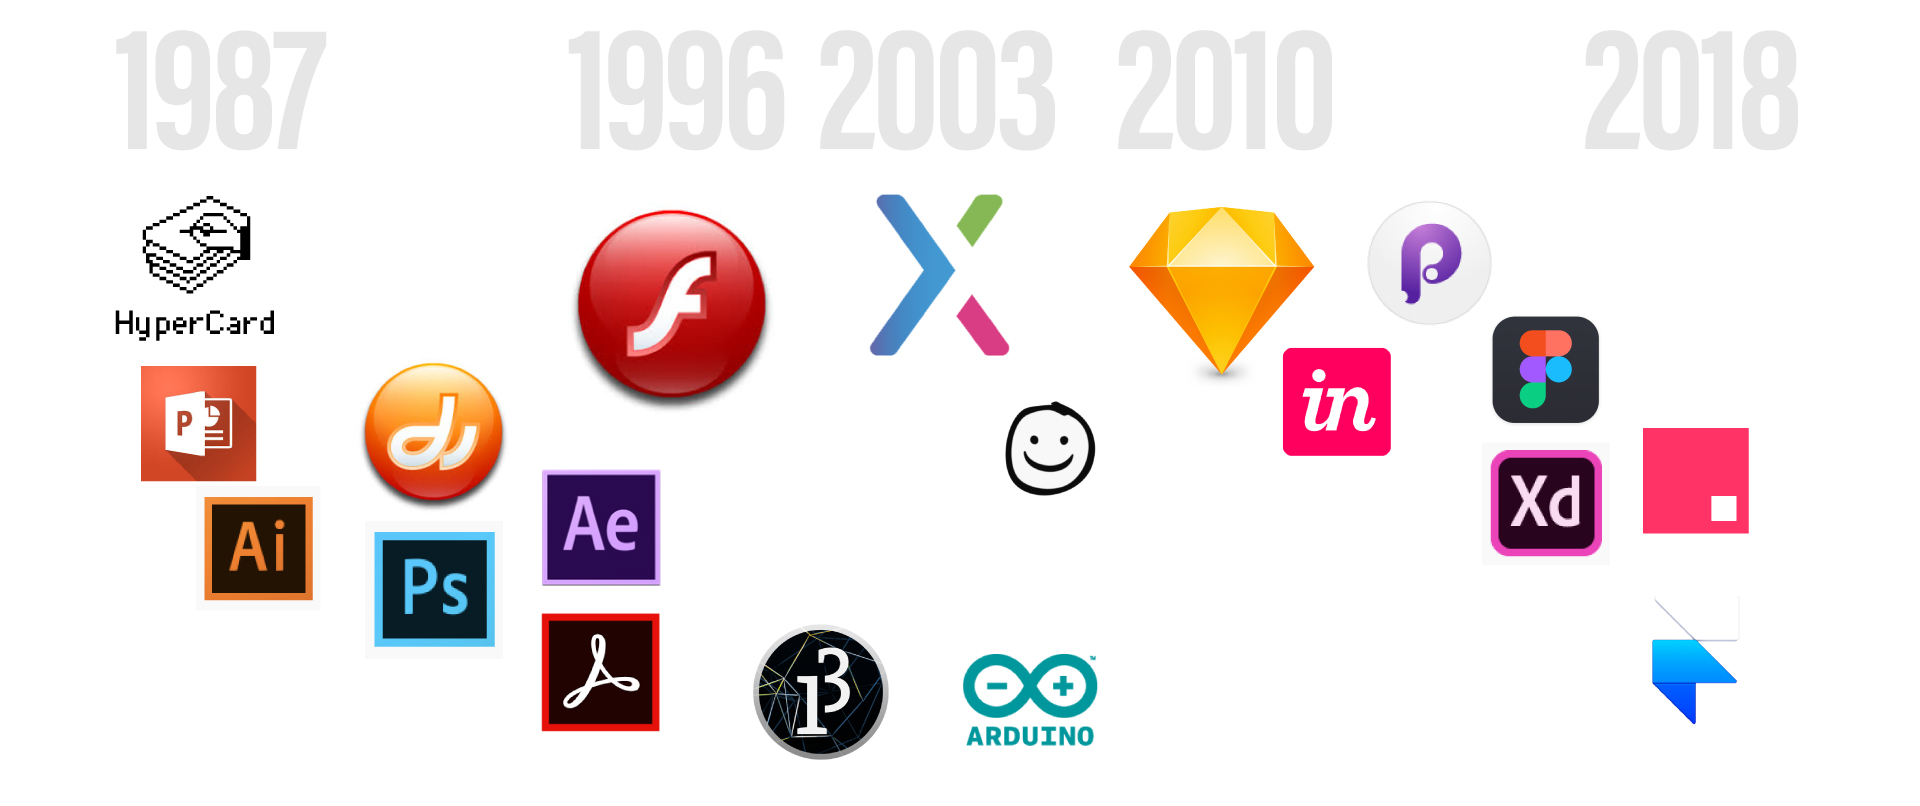 Prototyping tools' logos on a timeline from 1987 to 2018